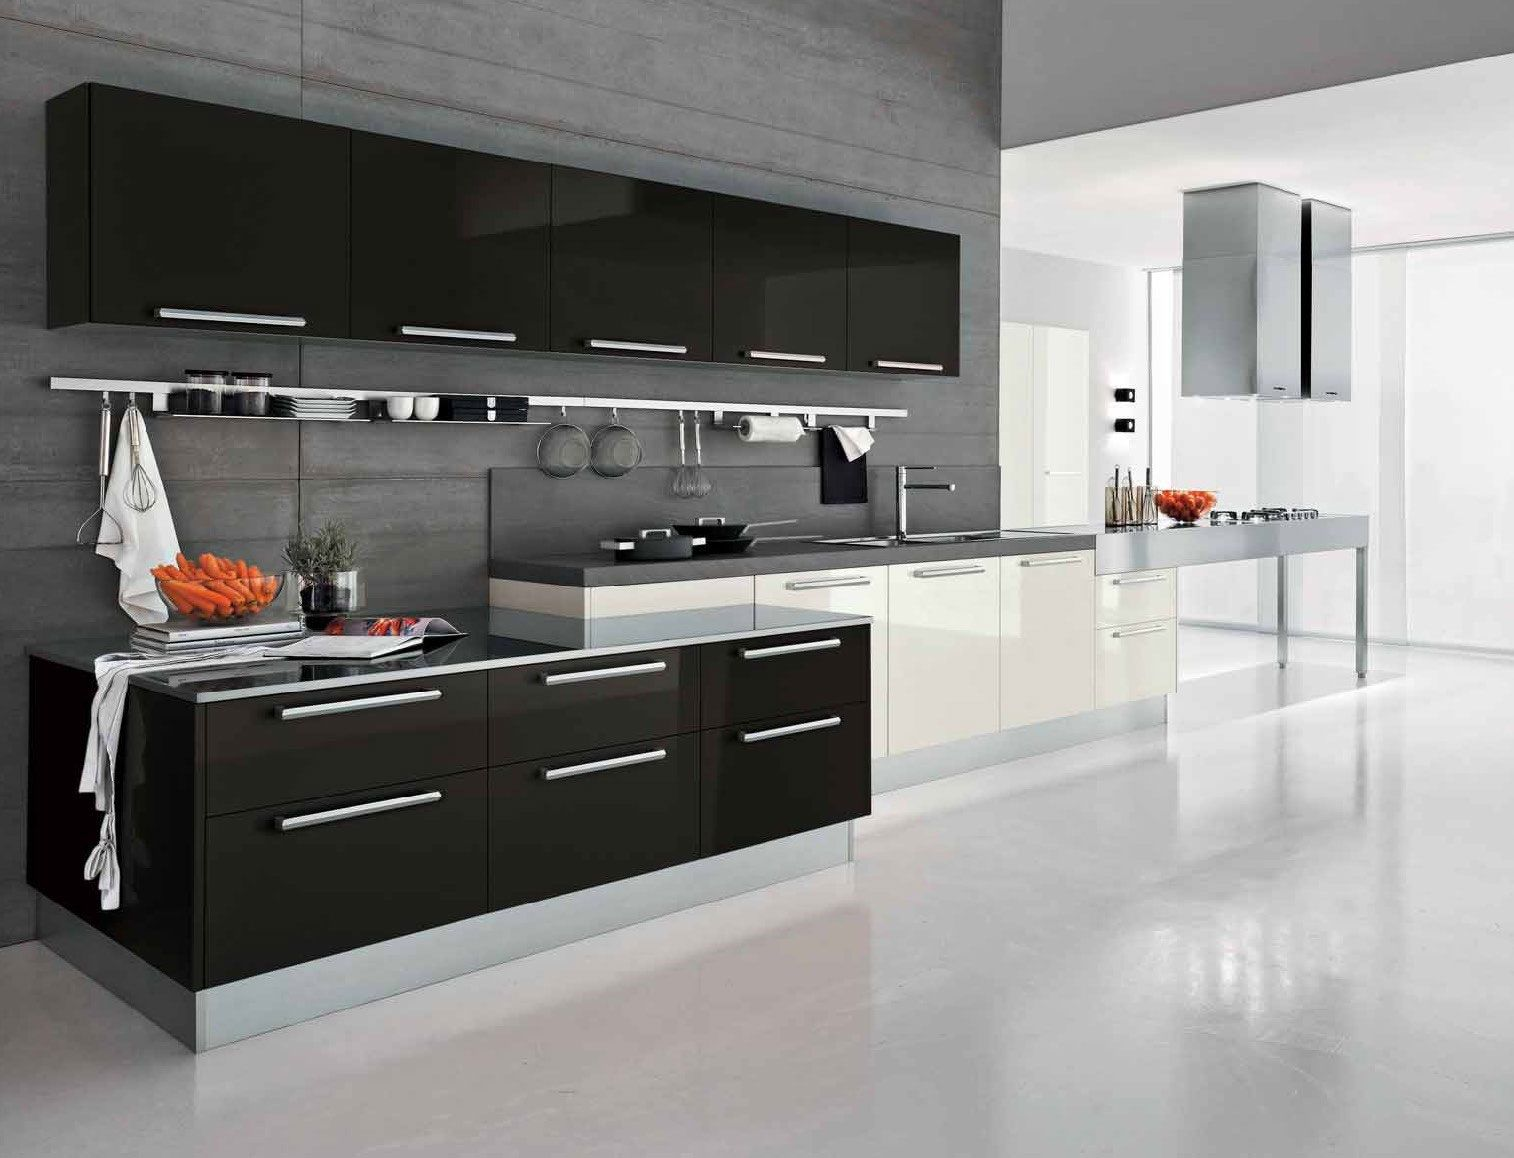 Fabulous Black White Kitchen Color With Modern Kitchen Cabinets In Sleek Design Completed With Sink Contemporary Kitchen Design Modern Kitchen One Wall Kitchen